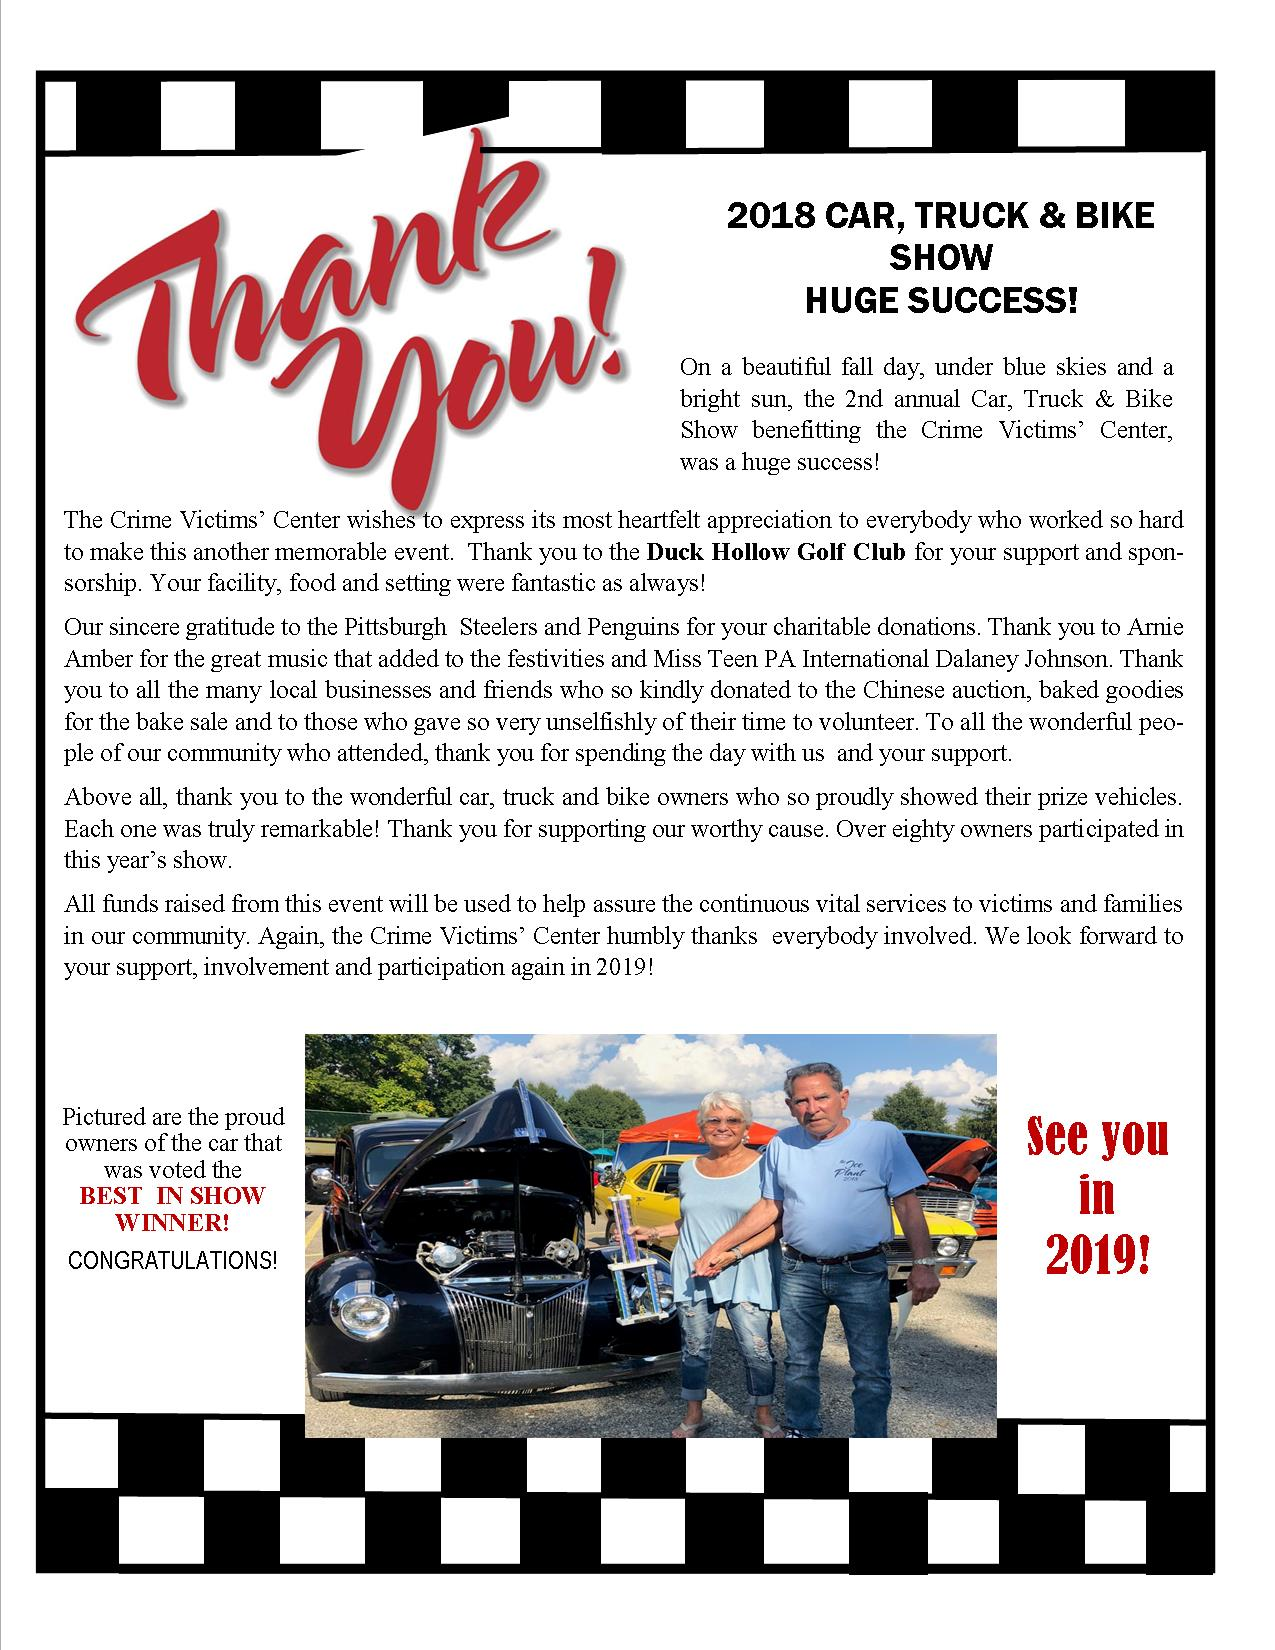 2018 Car Show website thank you